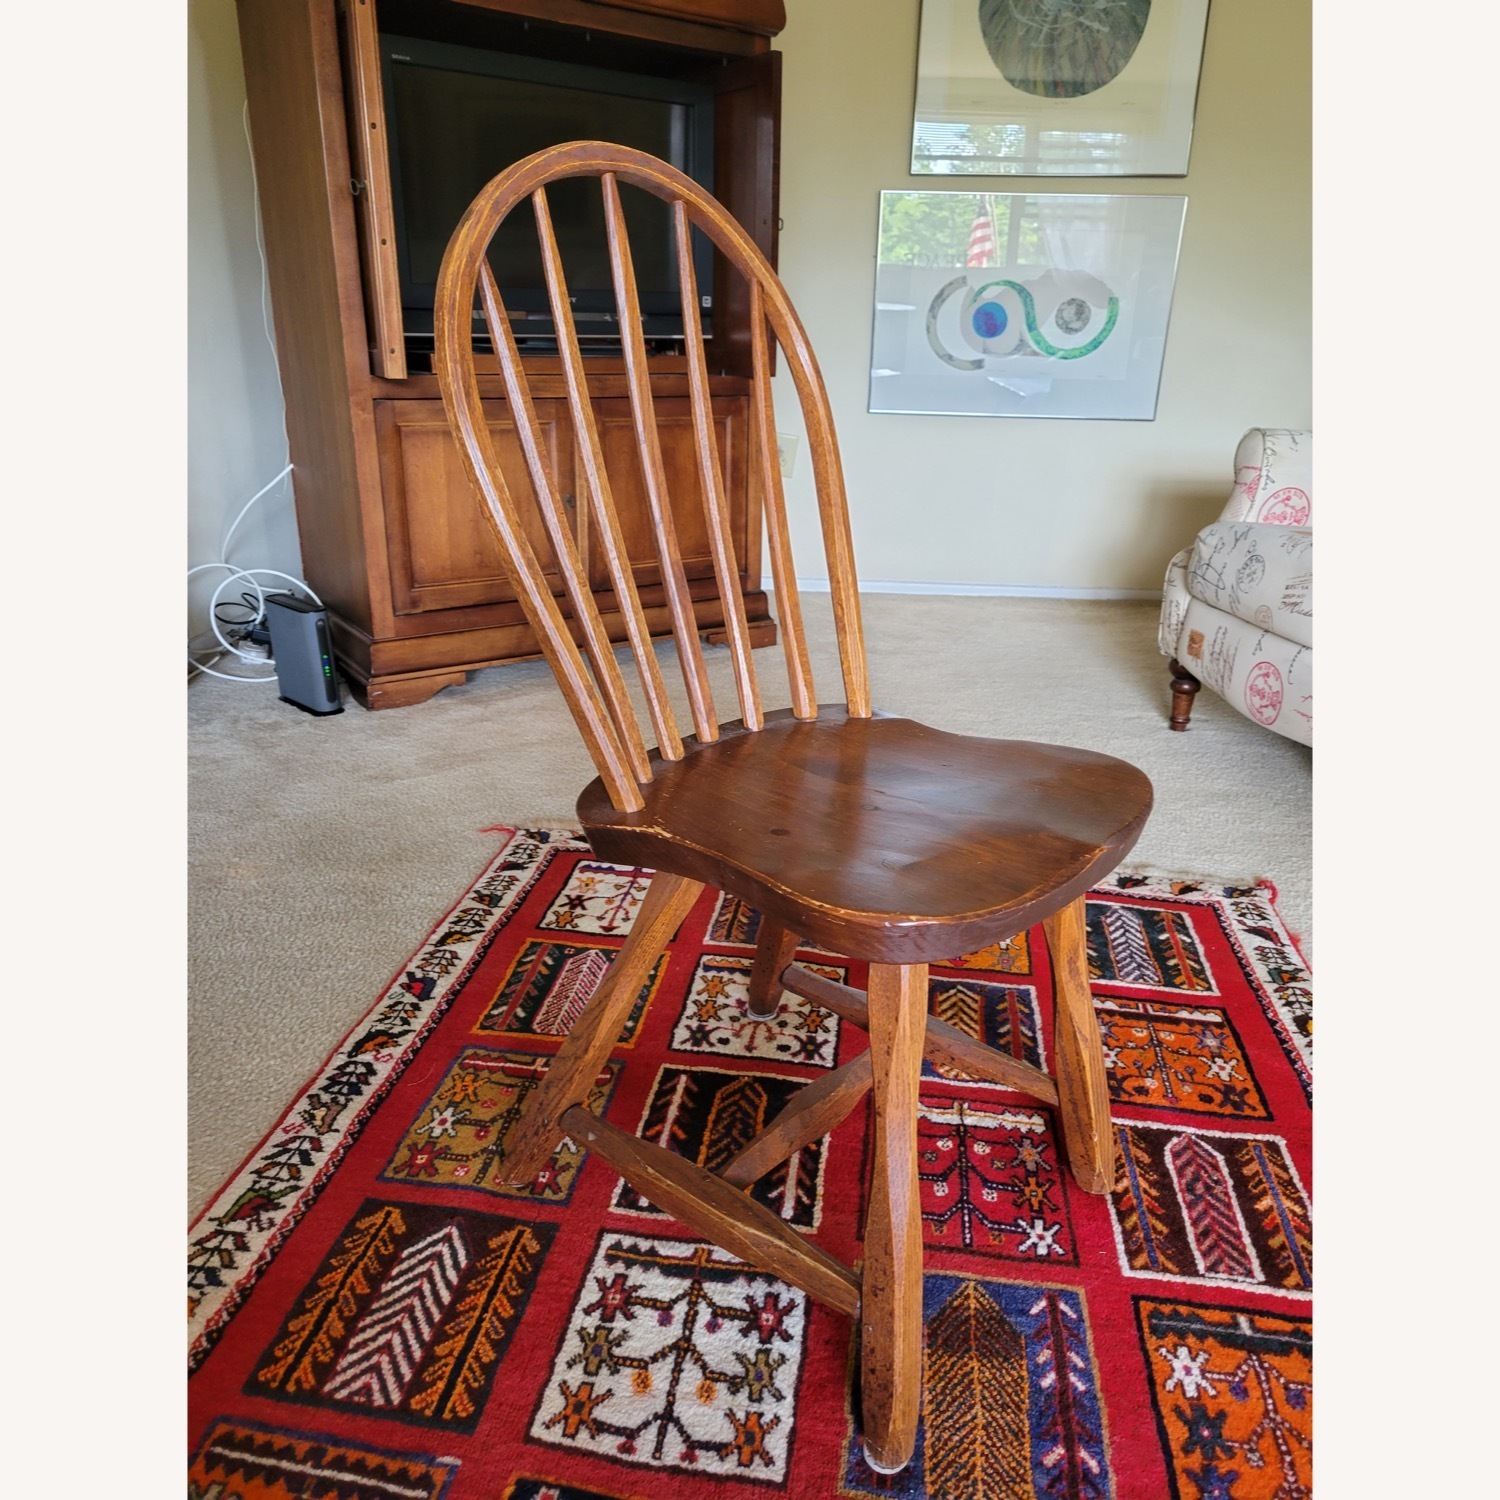 Curved Hunt Furniture Wood Chairs - image-3